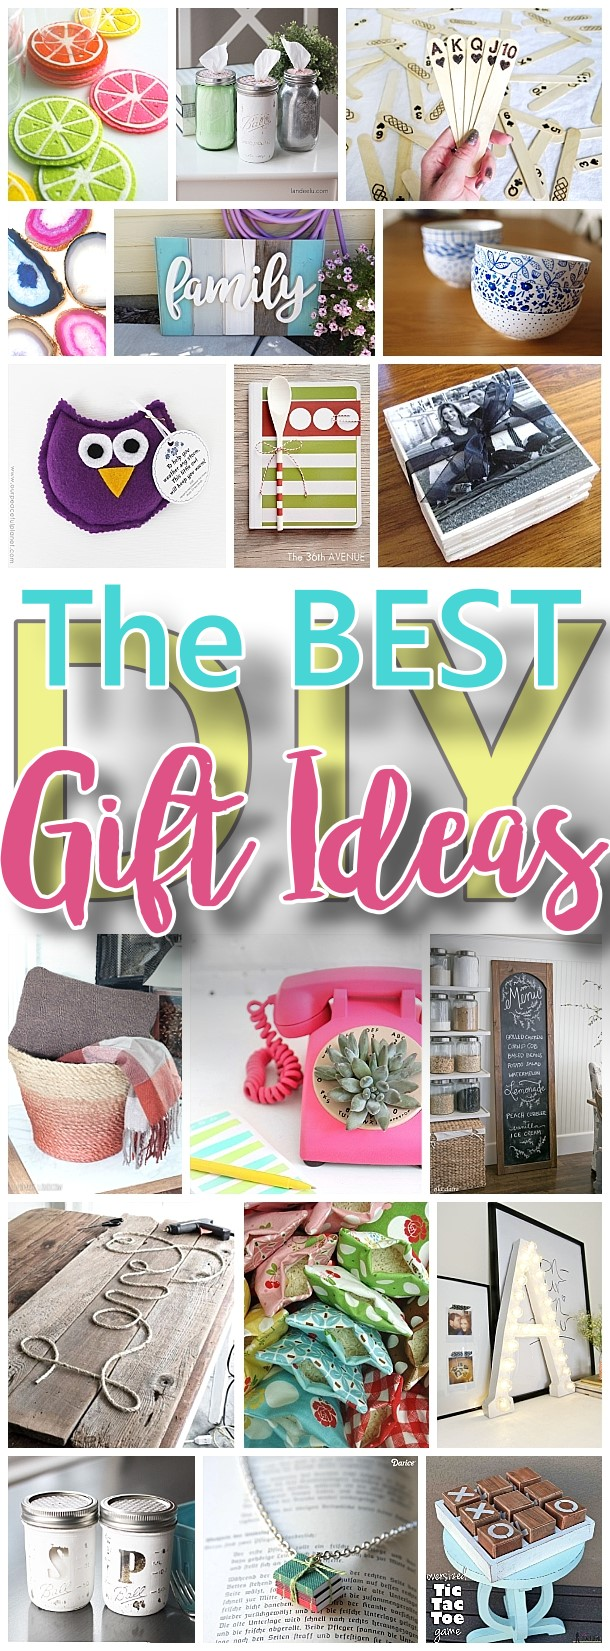 The BEST Do it Yourself Gifts – Fun, Clever and Unique DIY Craft Projects and Ideas for Christmas, Birthdays, Thank You or Any Occasion via Dreaming in DIY